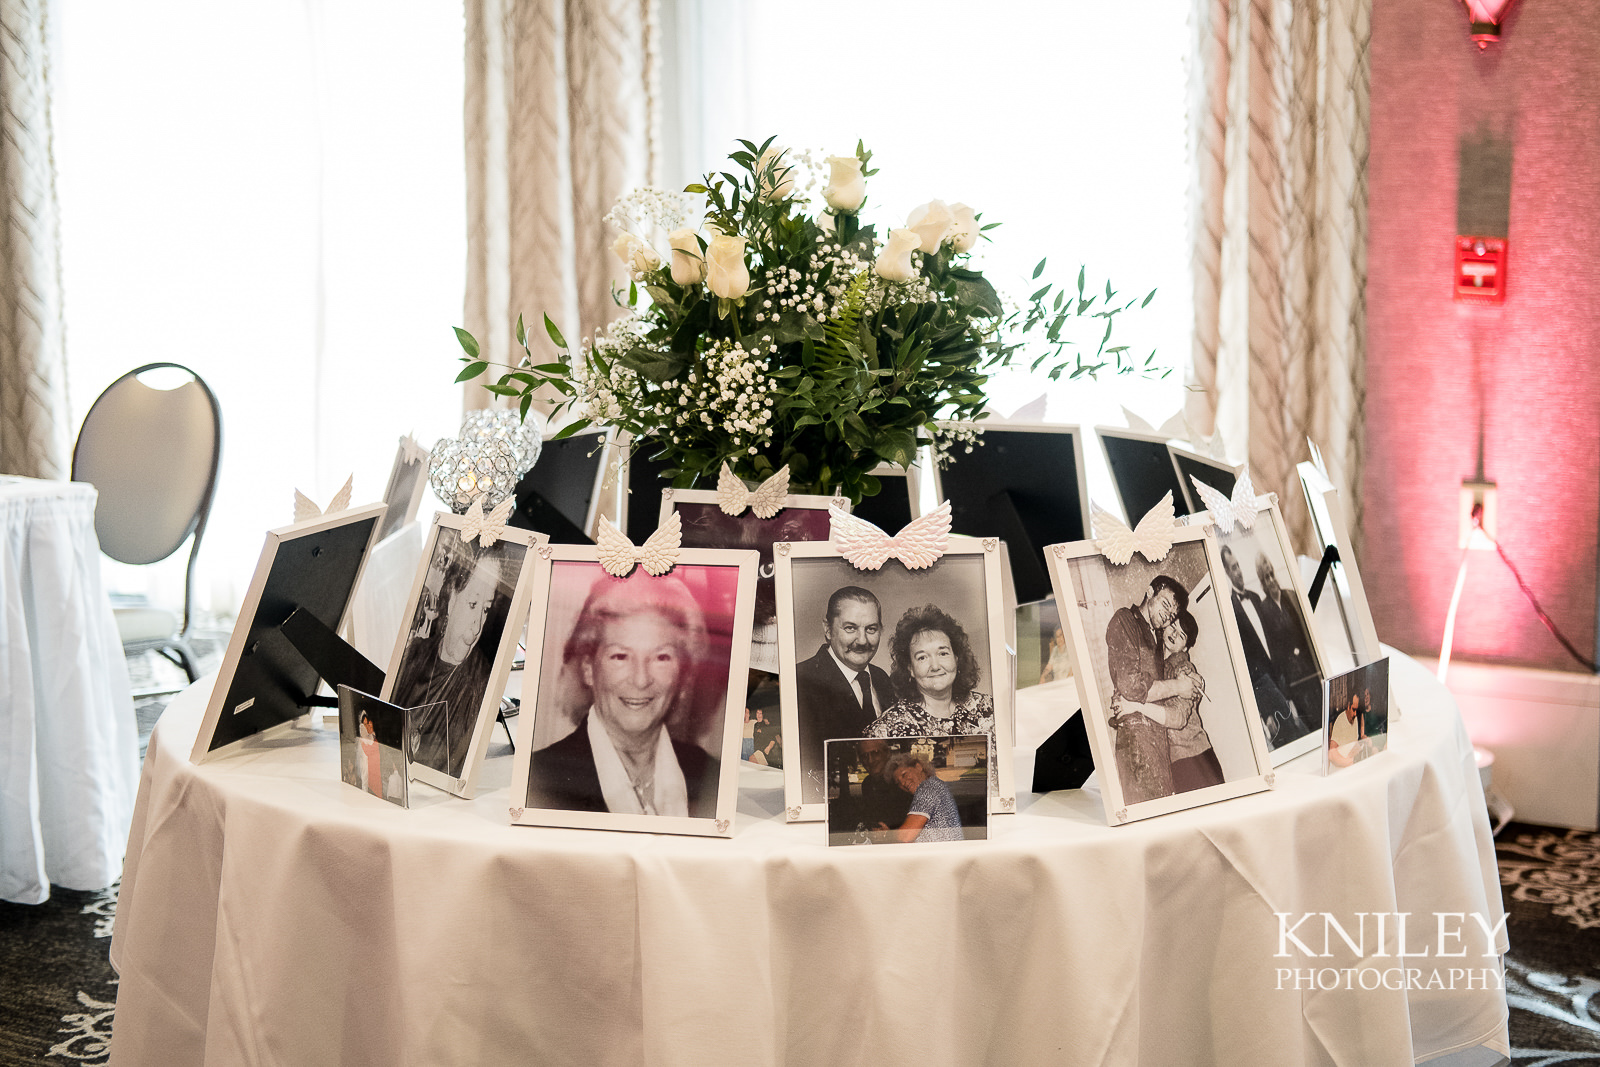 071 - Woodcliff Hotel - Rochester NY wedding photo - Kniley Photography.jpg